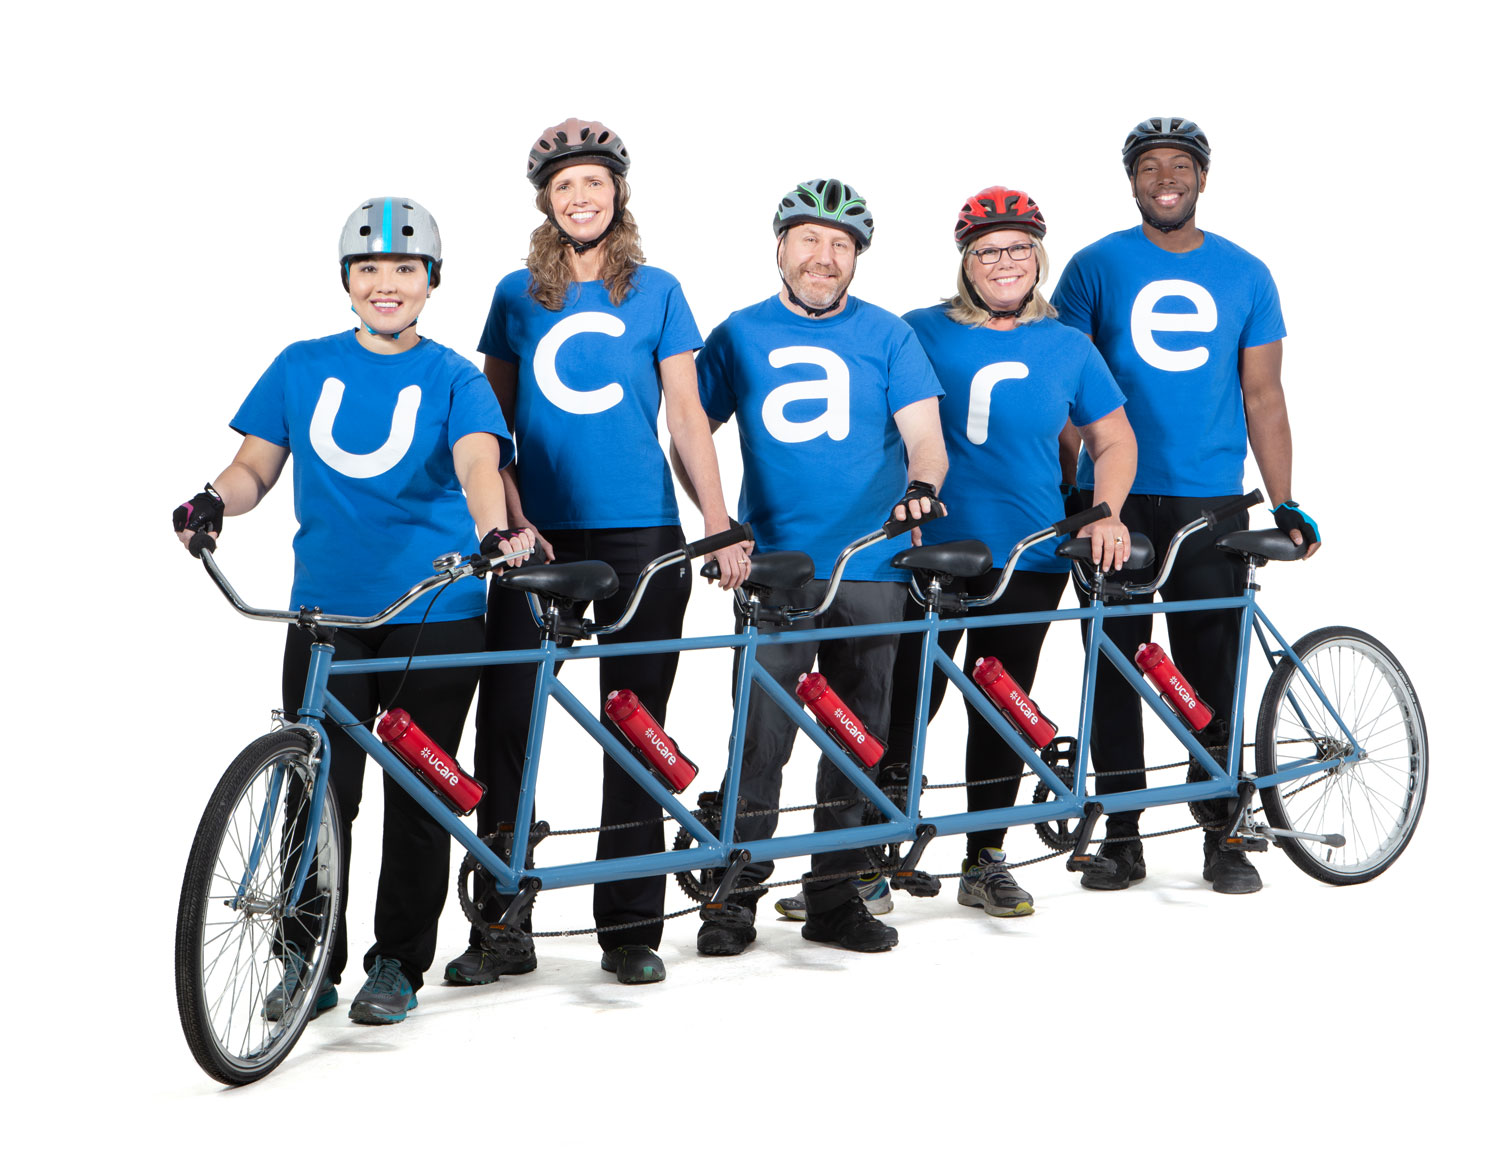 UCare employees with bike